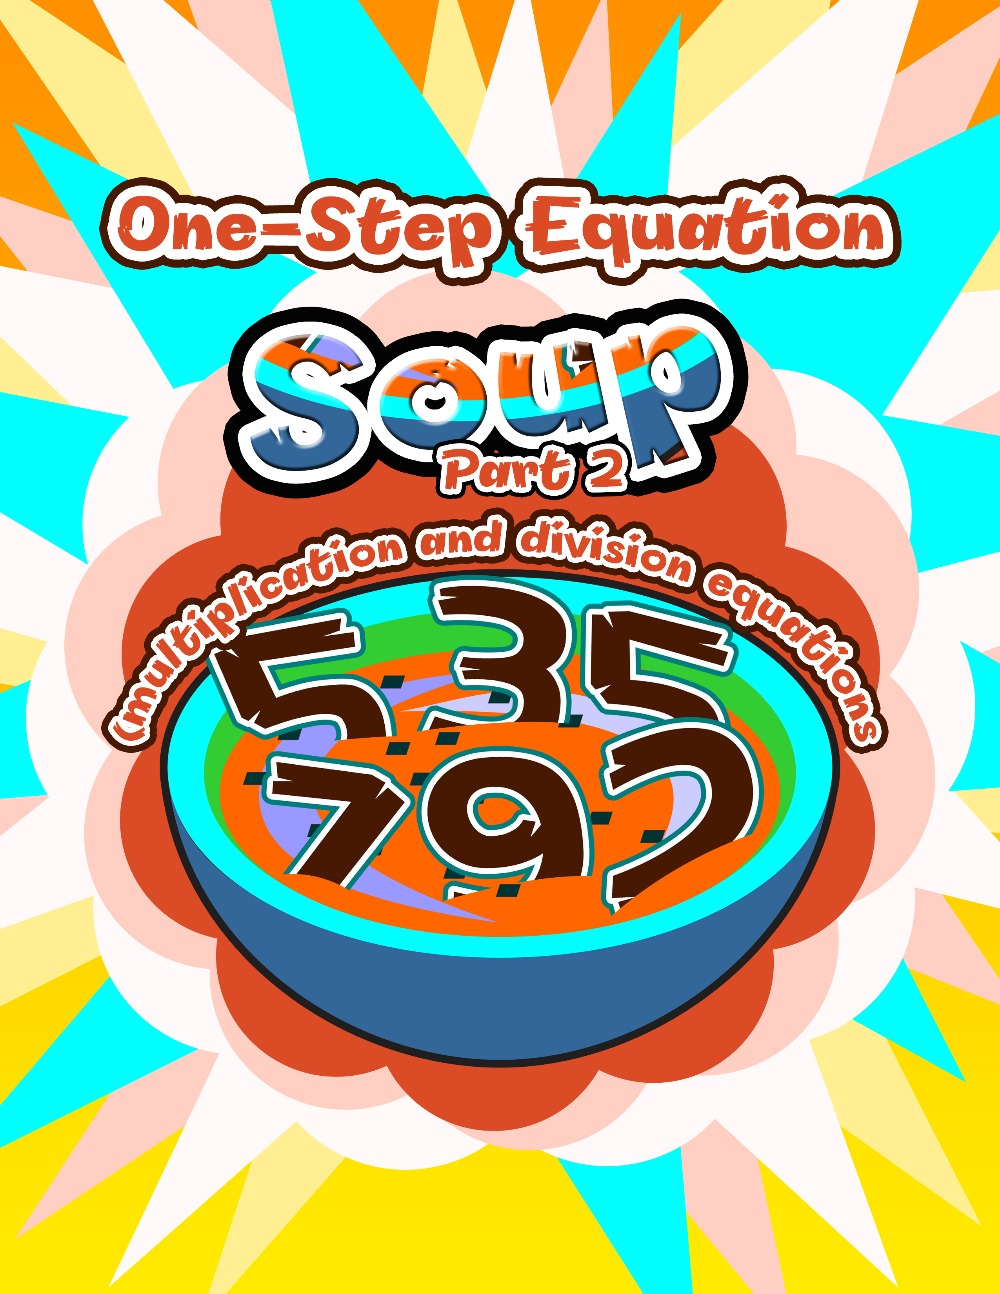 One-Step Equation Soup, Part 2